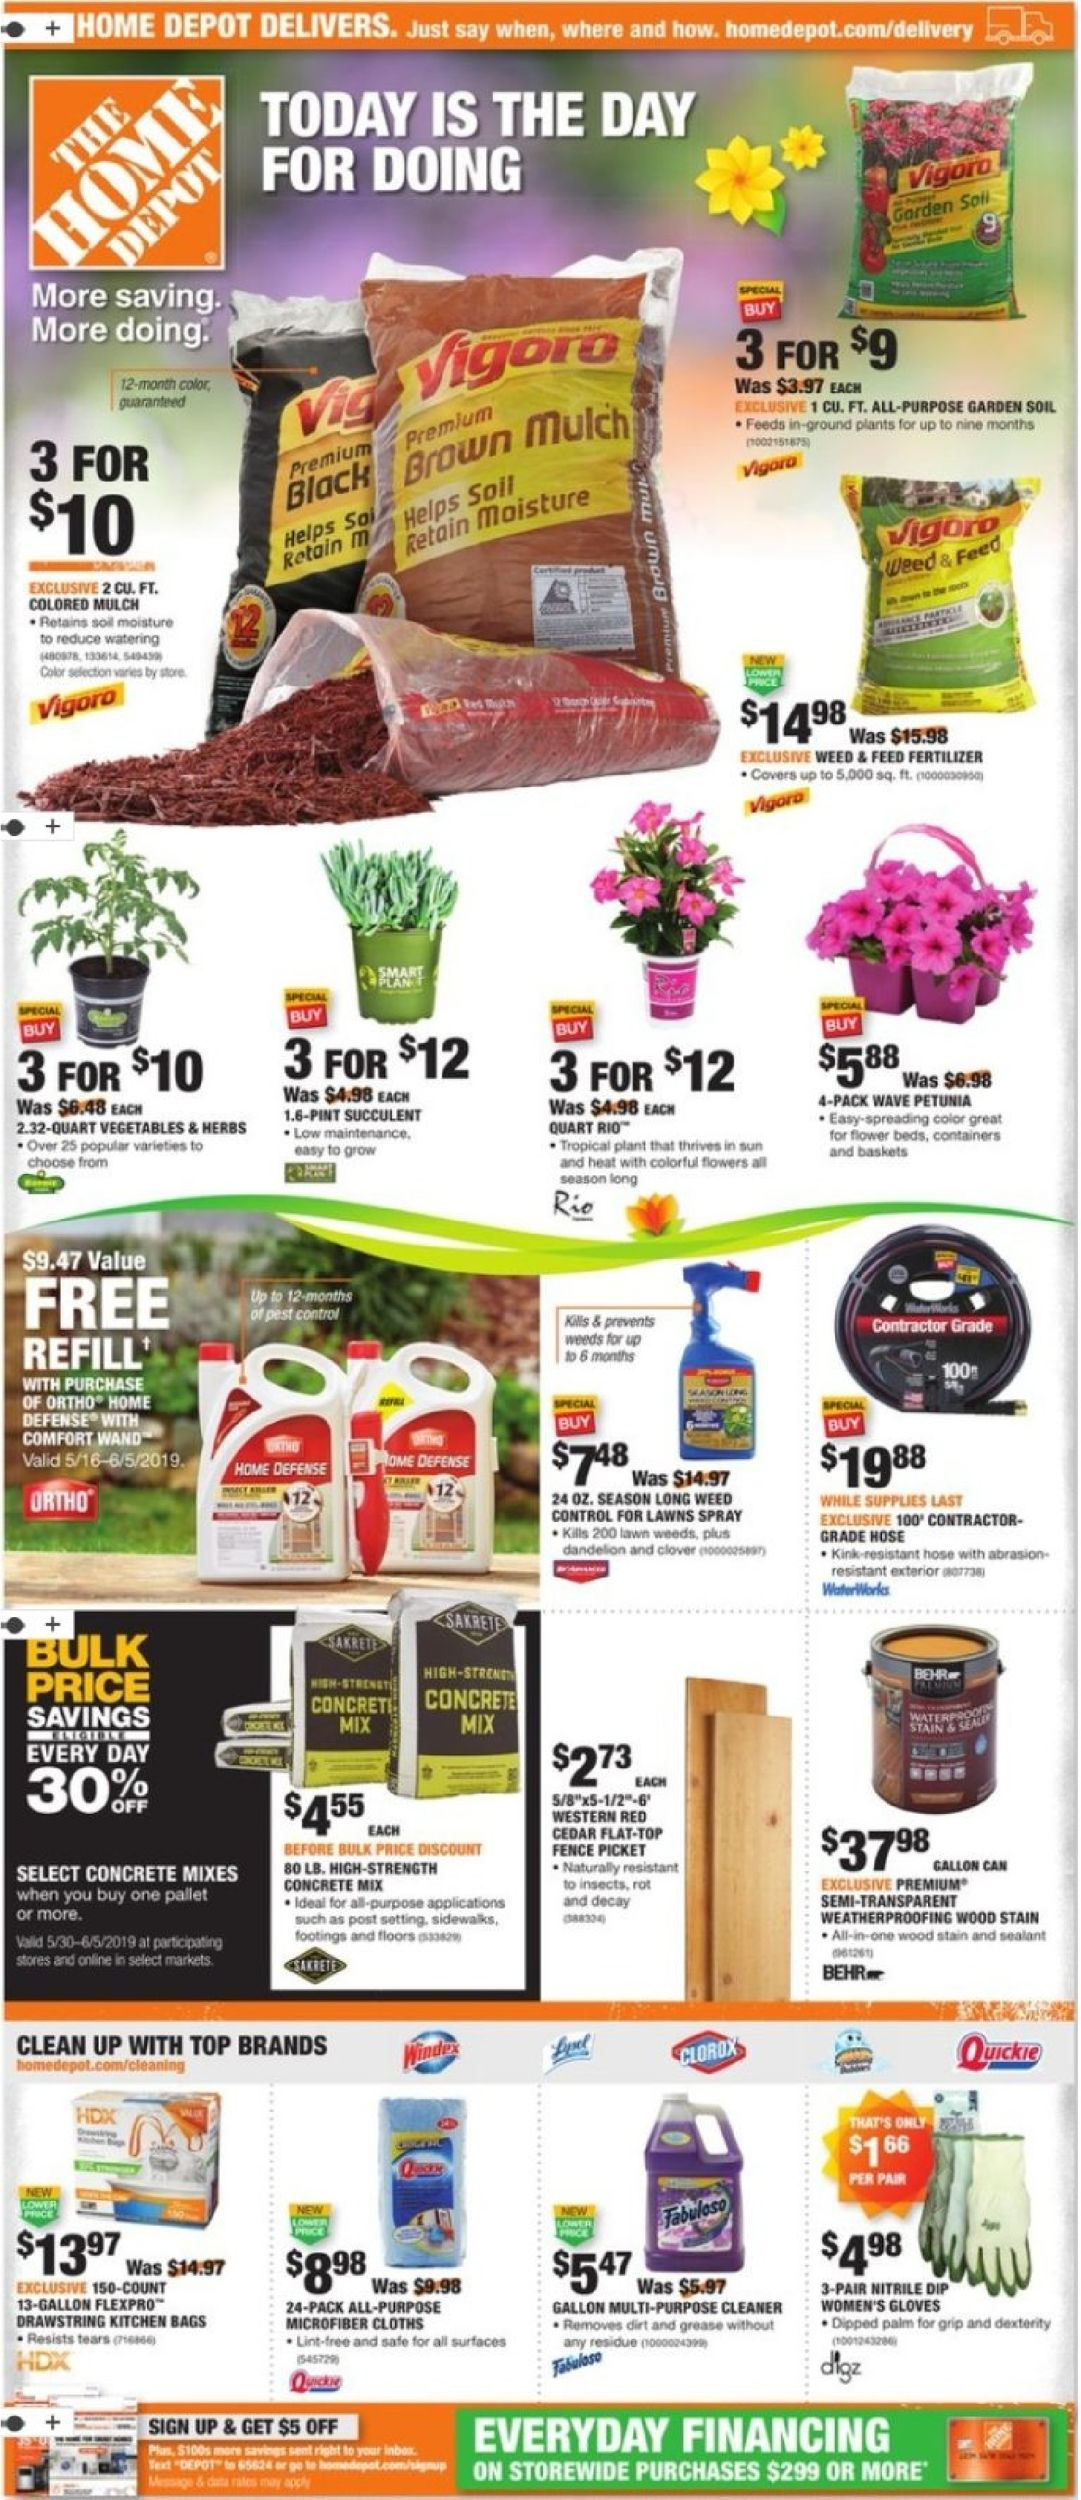 Home Depot Current weekly ad 05/30 - 06/05/2019 - frequent-ads com